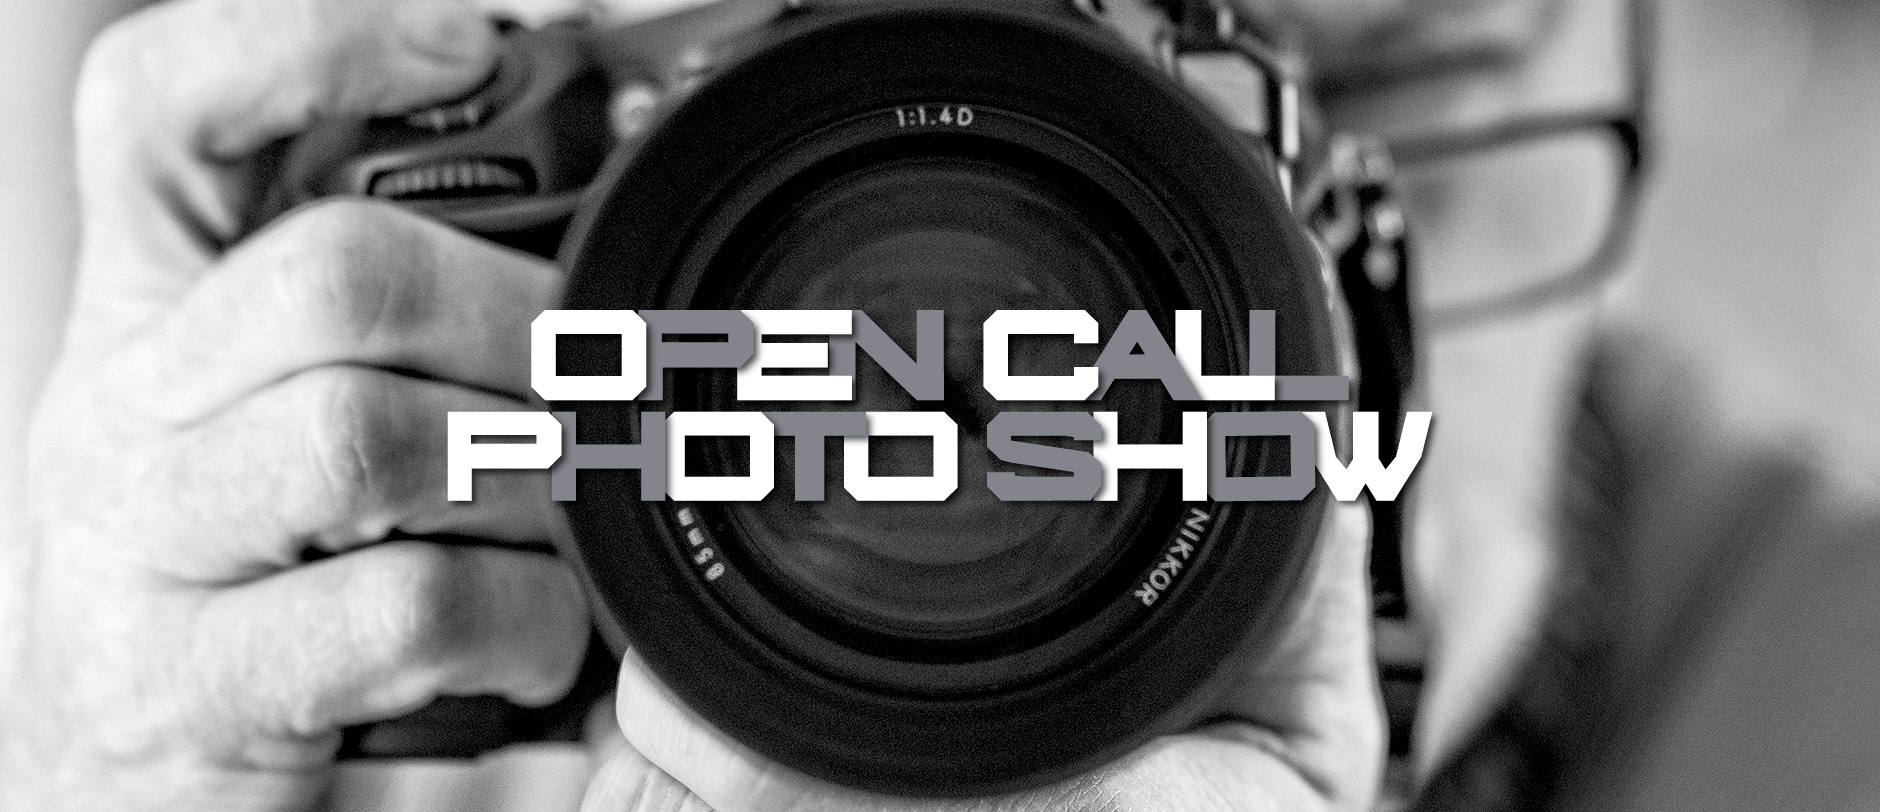 PMFA Open Call Photography Show May 21, 2015